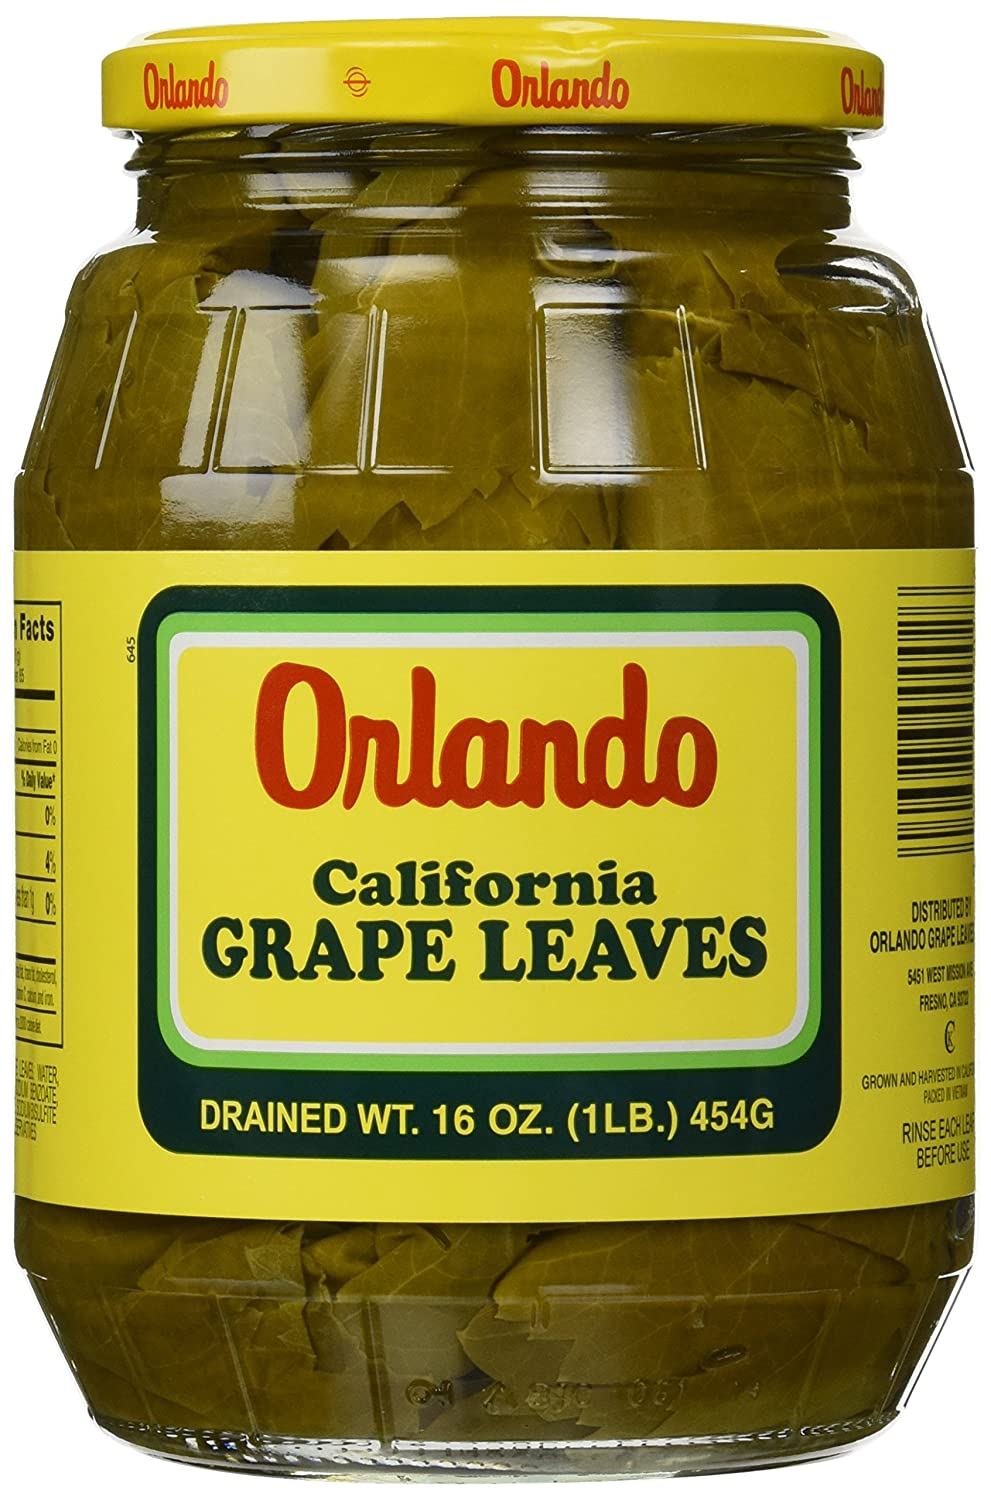 California Grape Leaves Orlando 2lb Jar Dr Wt 16oz Amazon Com Grocery Gourmet Food